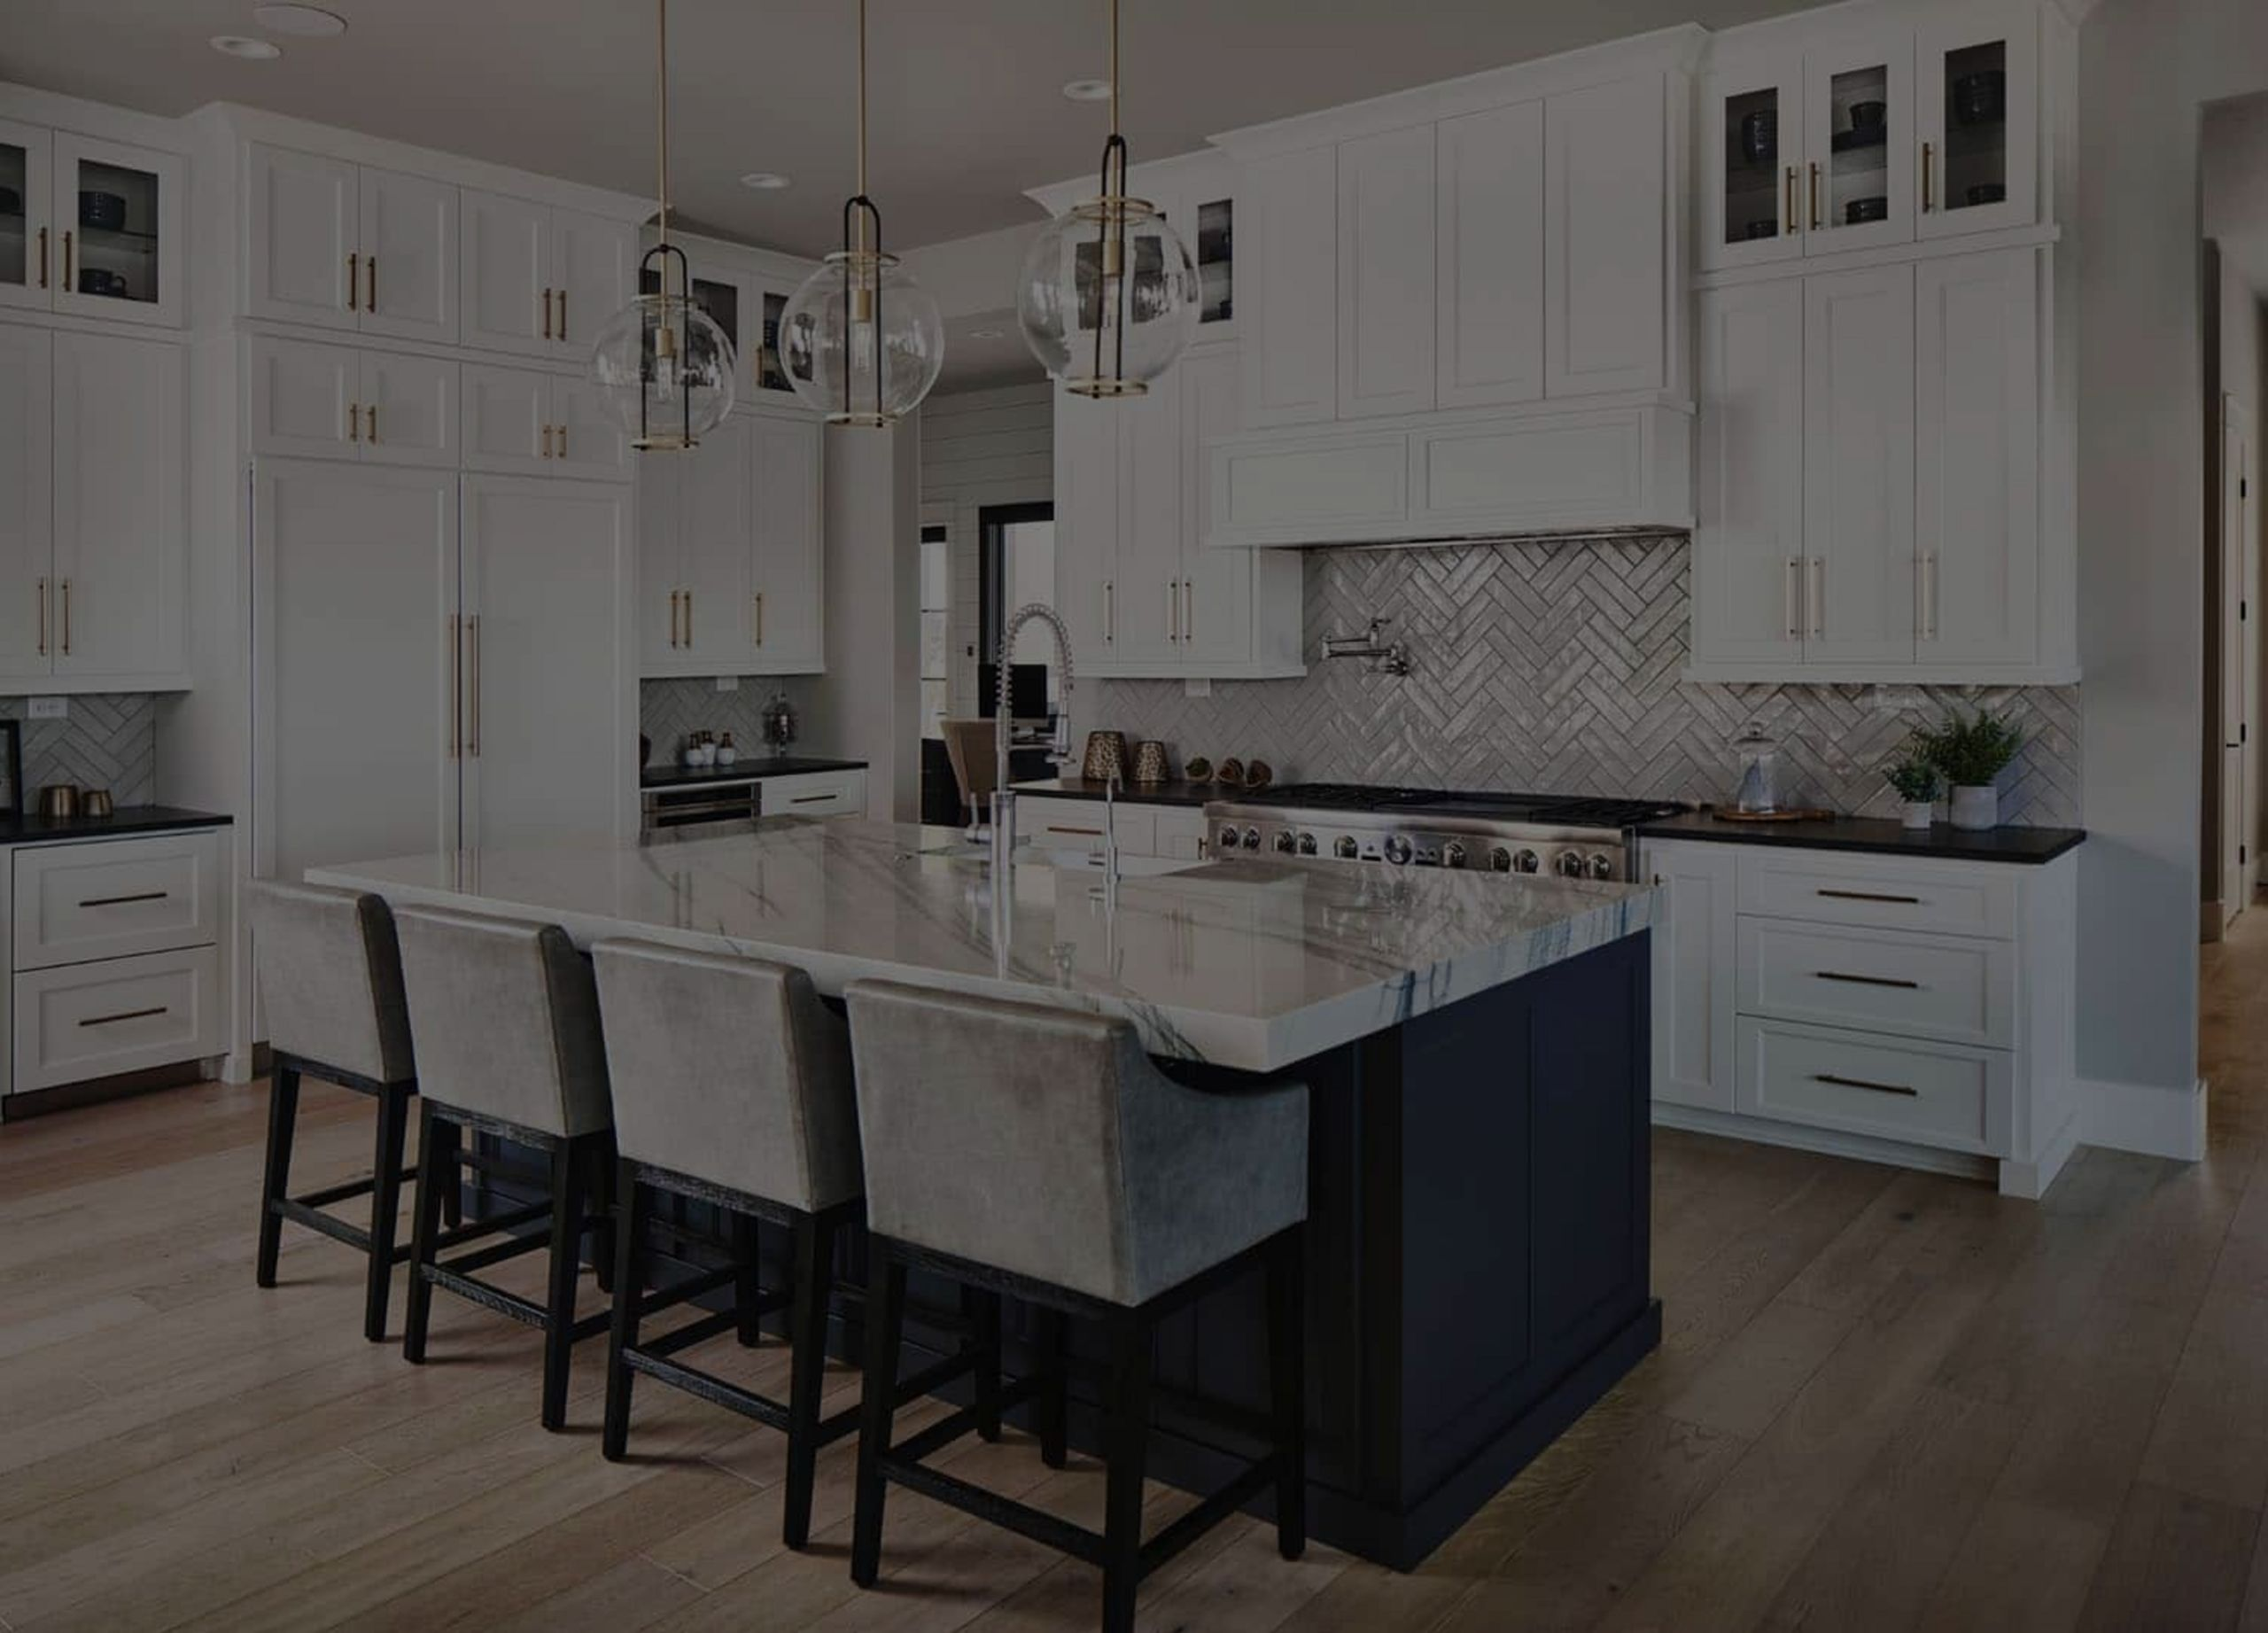 Charming & classically inspired kitchen